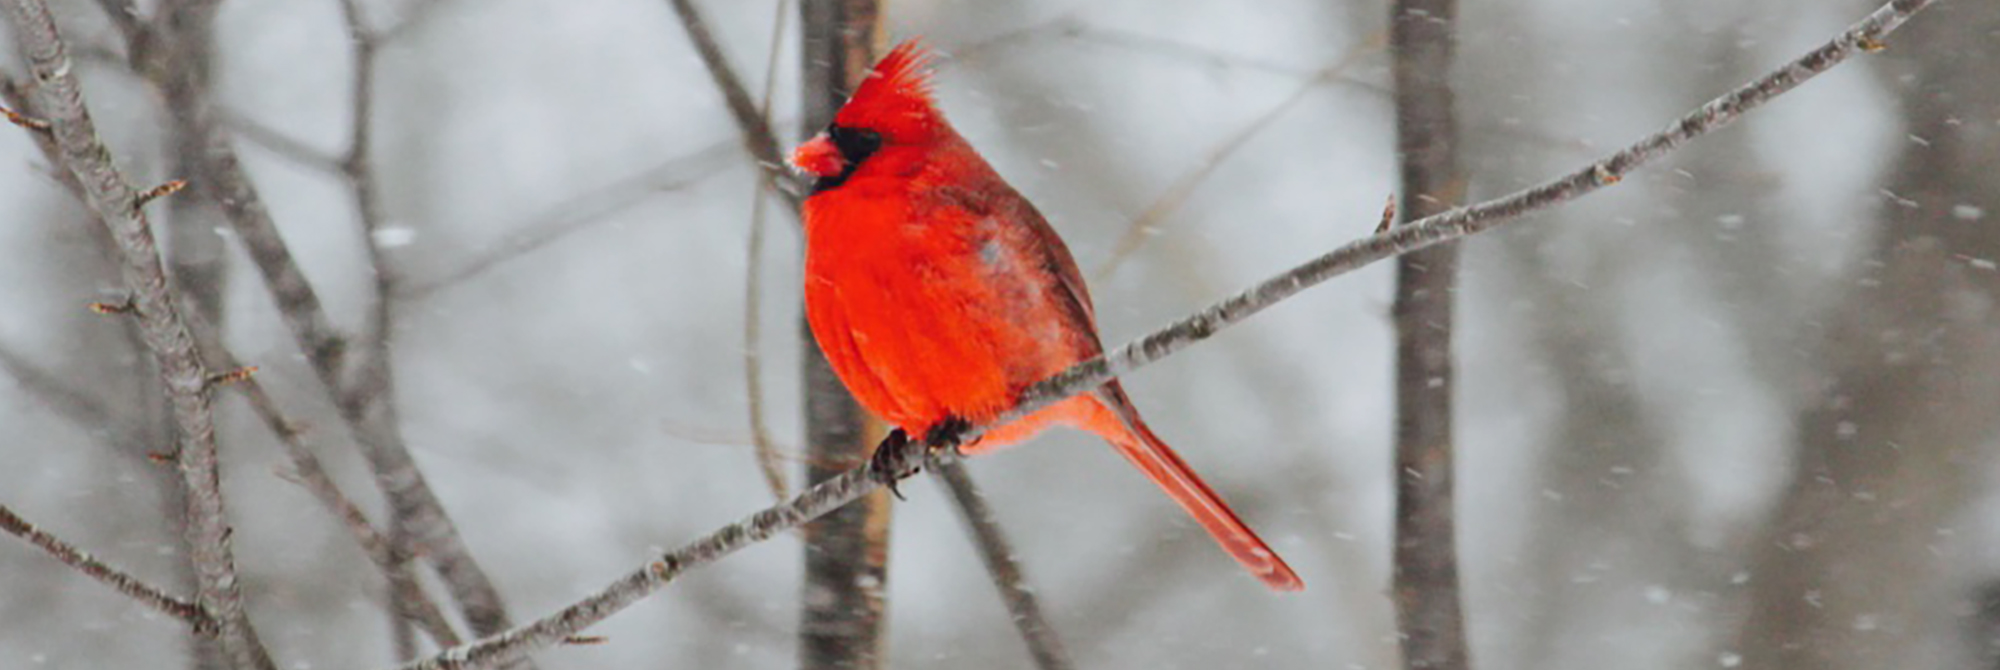 Mr. Cardinal Weathering the Storm by C Ledogar